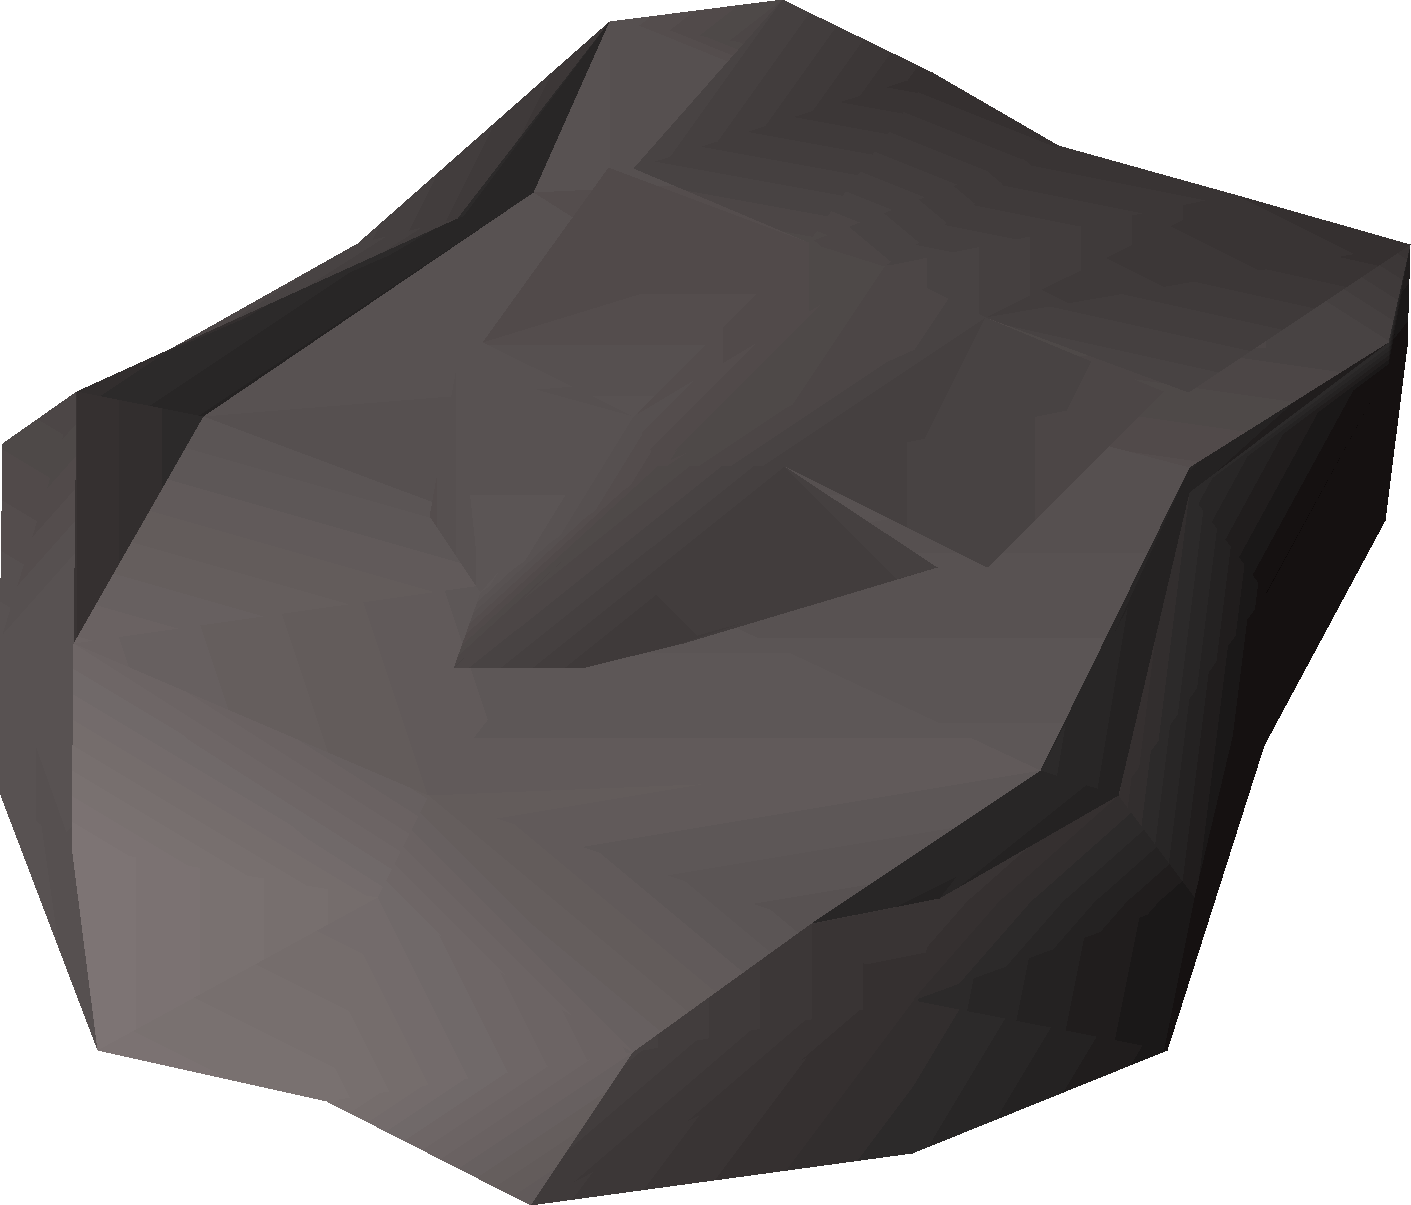 osrs coin pouch